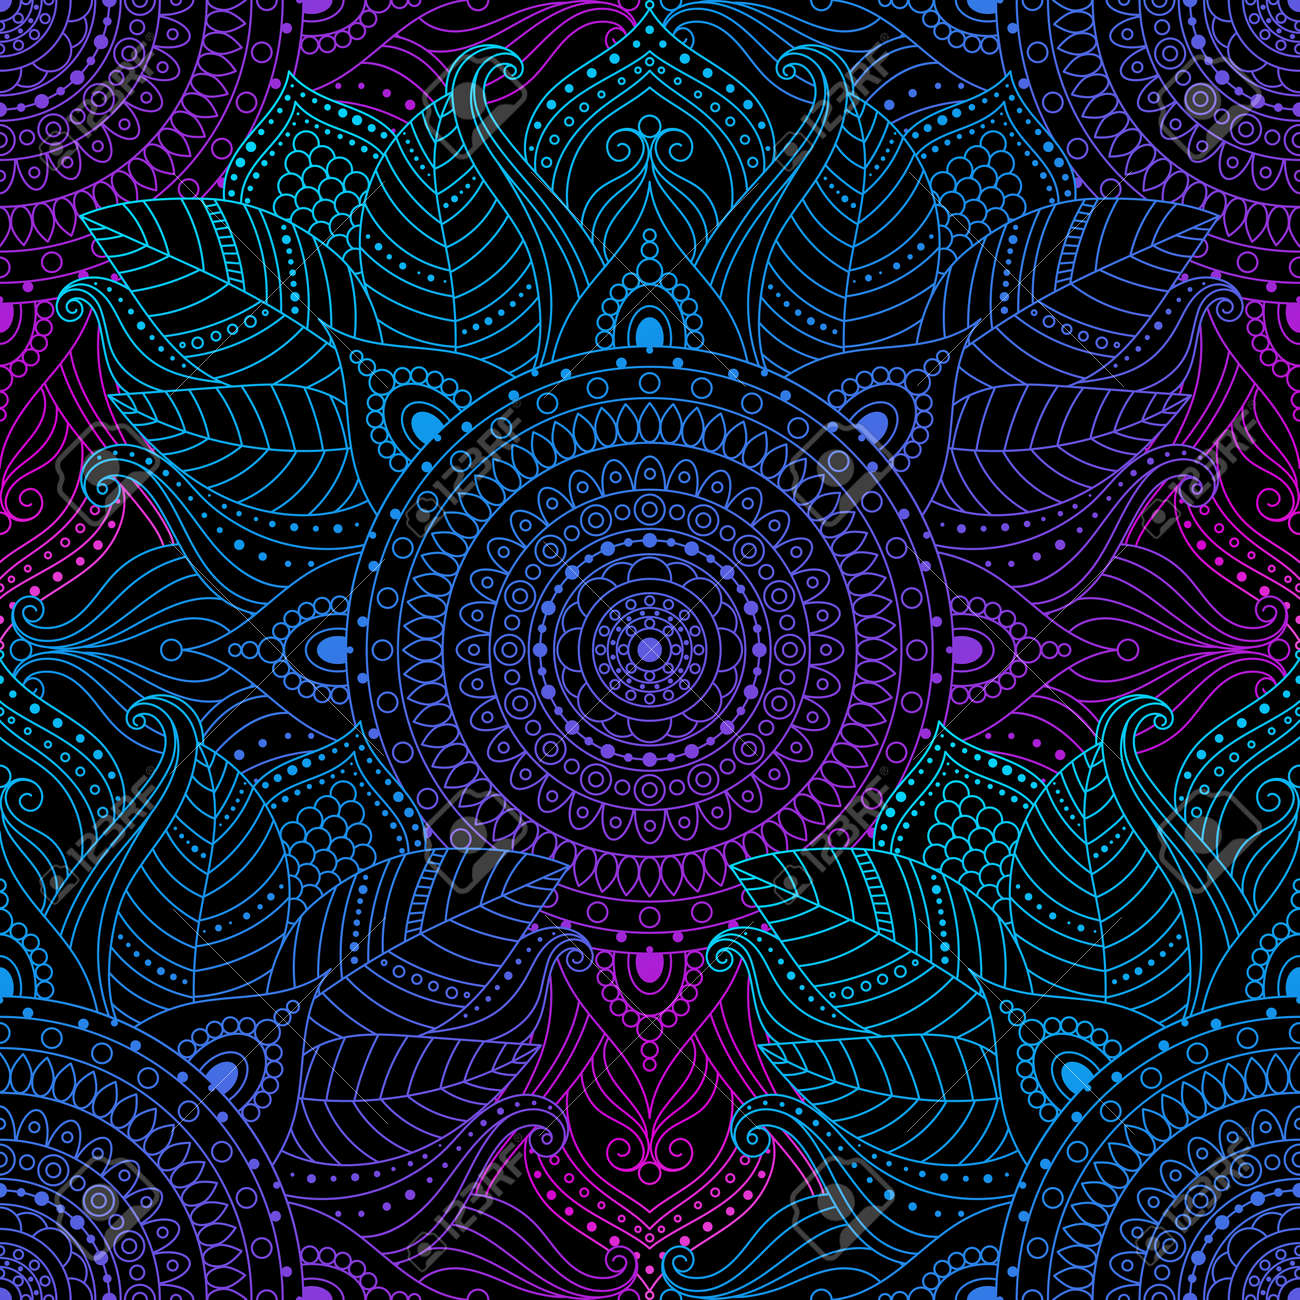 Seamless oriental arabesque pattern. Laced decorative floral pattern with circular ornament, gradient mandala on black background. Mosaic tiles boho, ethnic design in vector, Indian or Arabic motifs. - 136799245